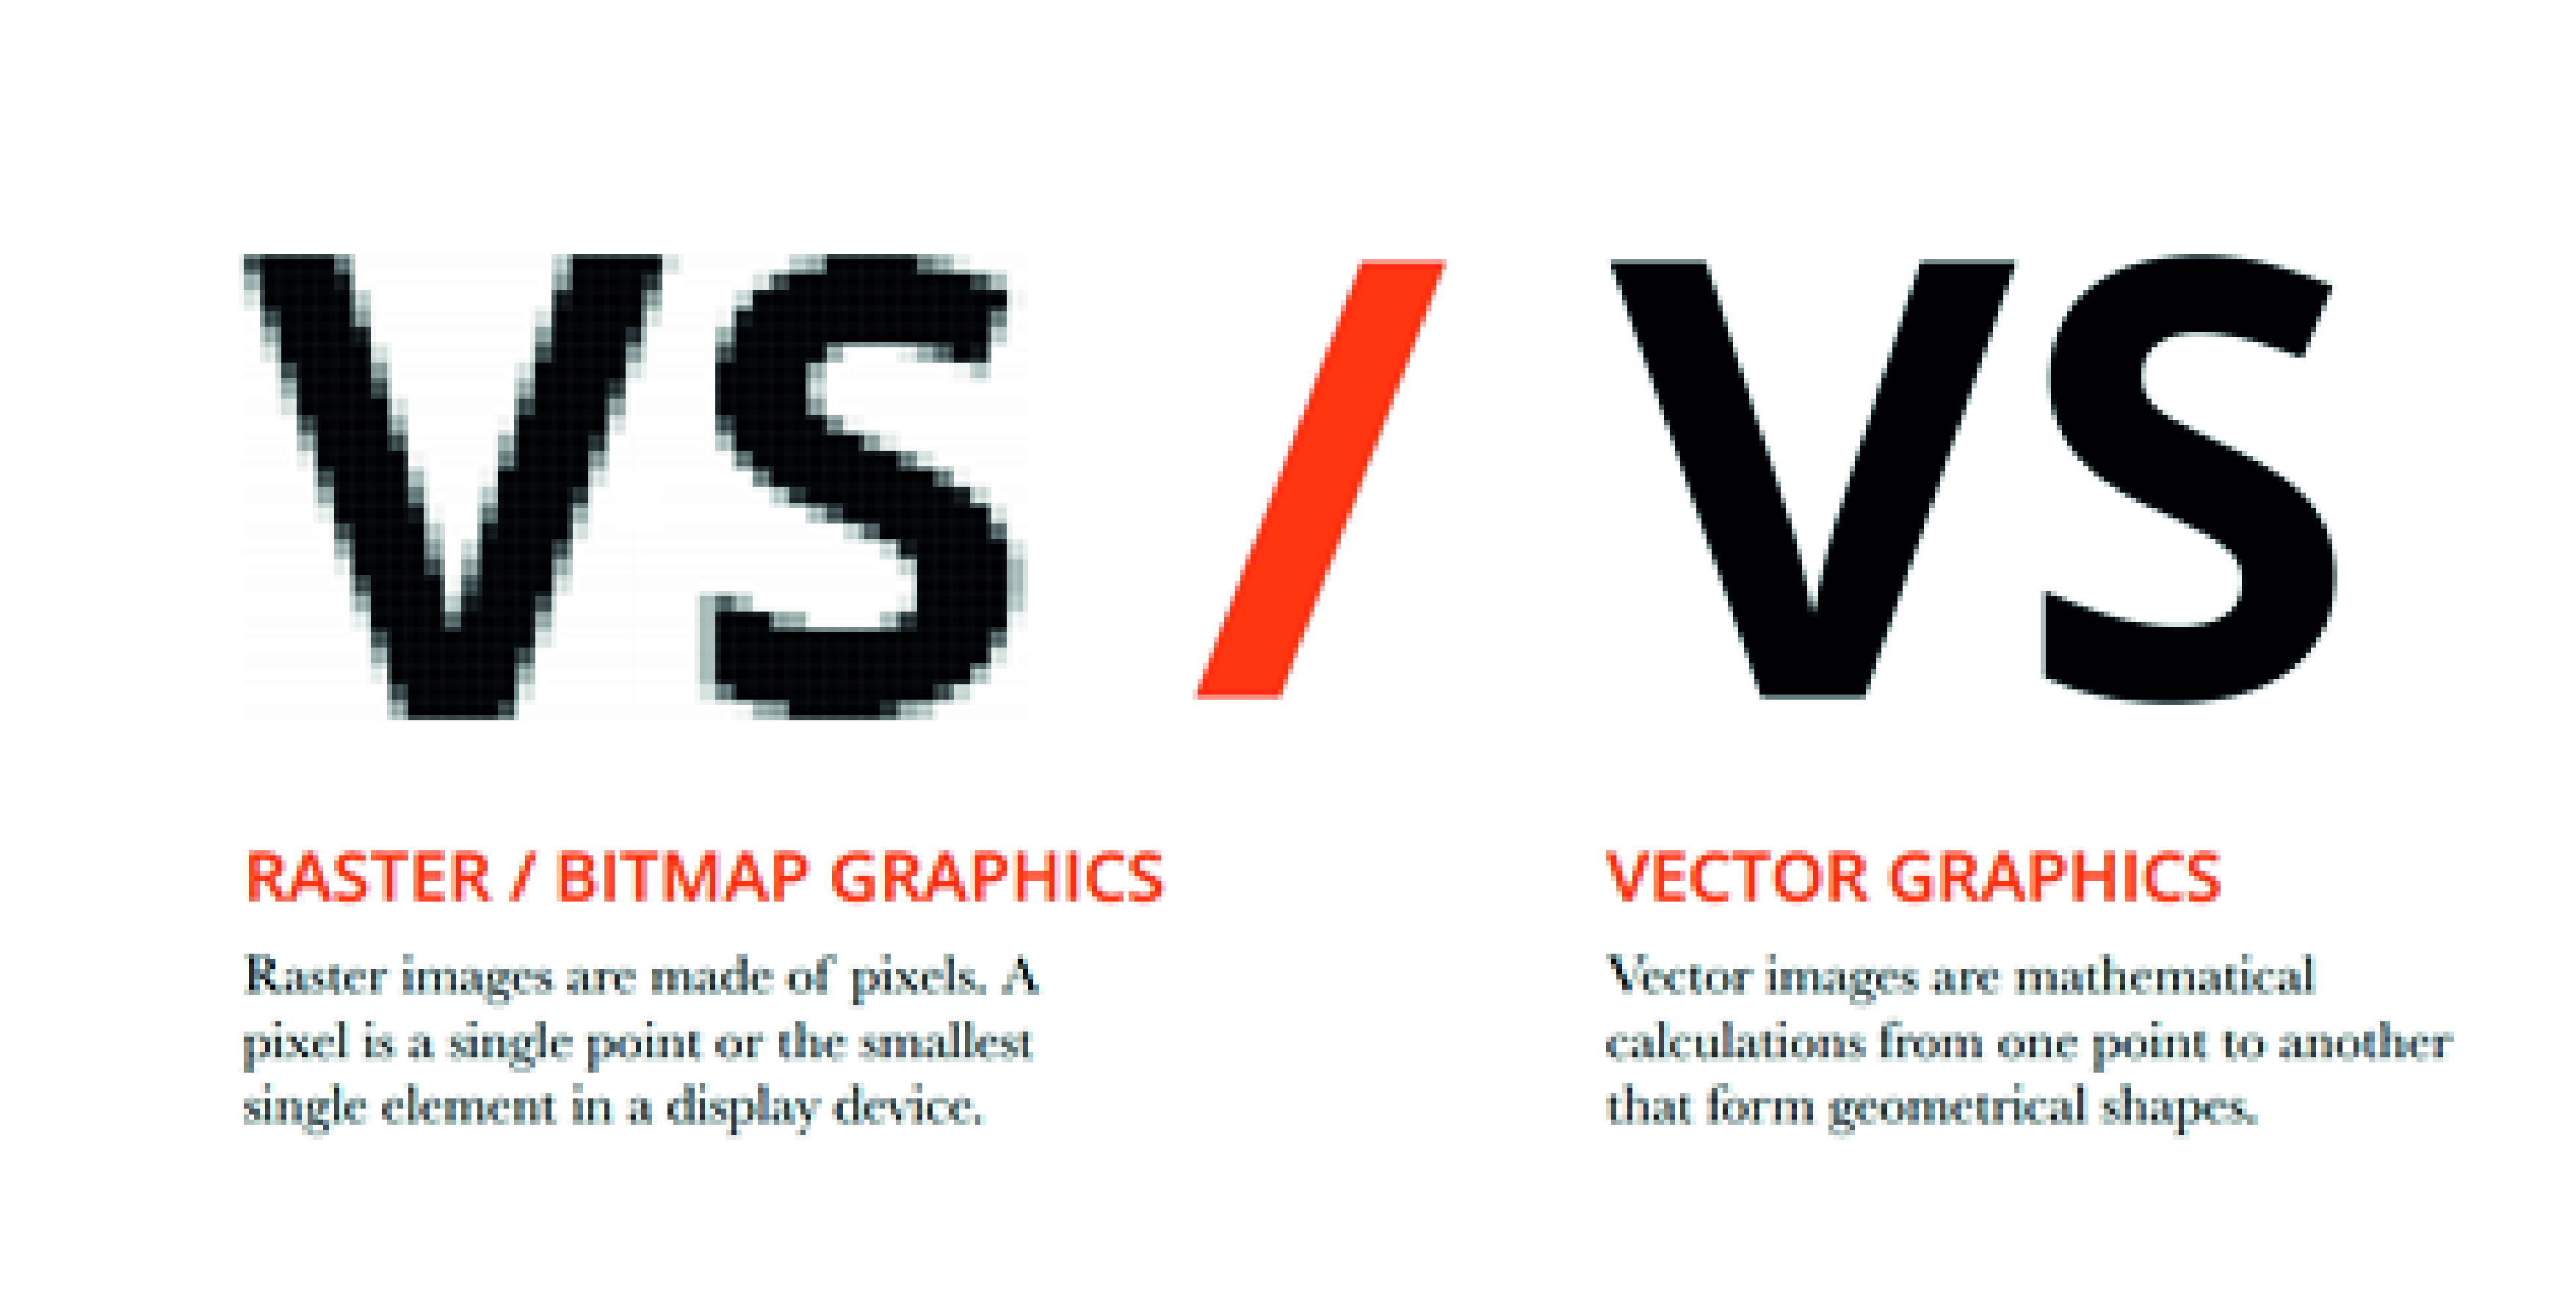 Vectorise your logo or convert image to vector